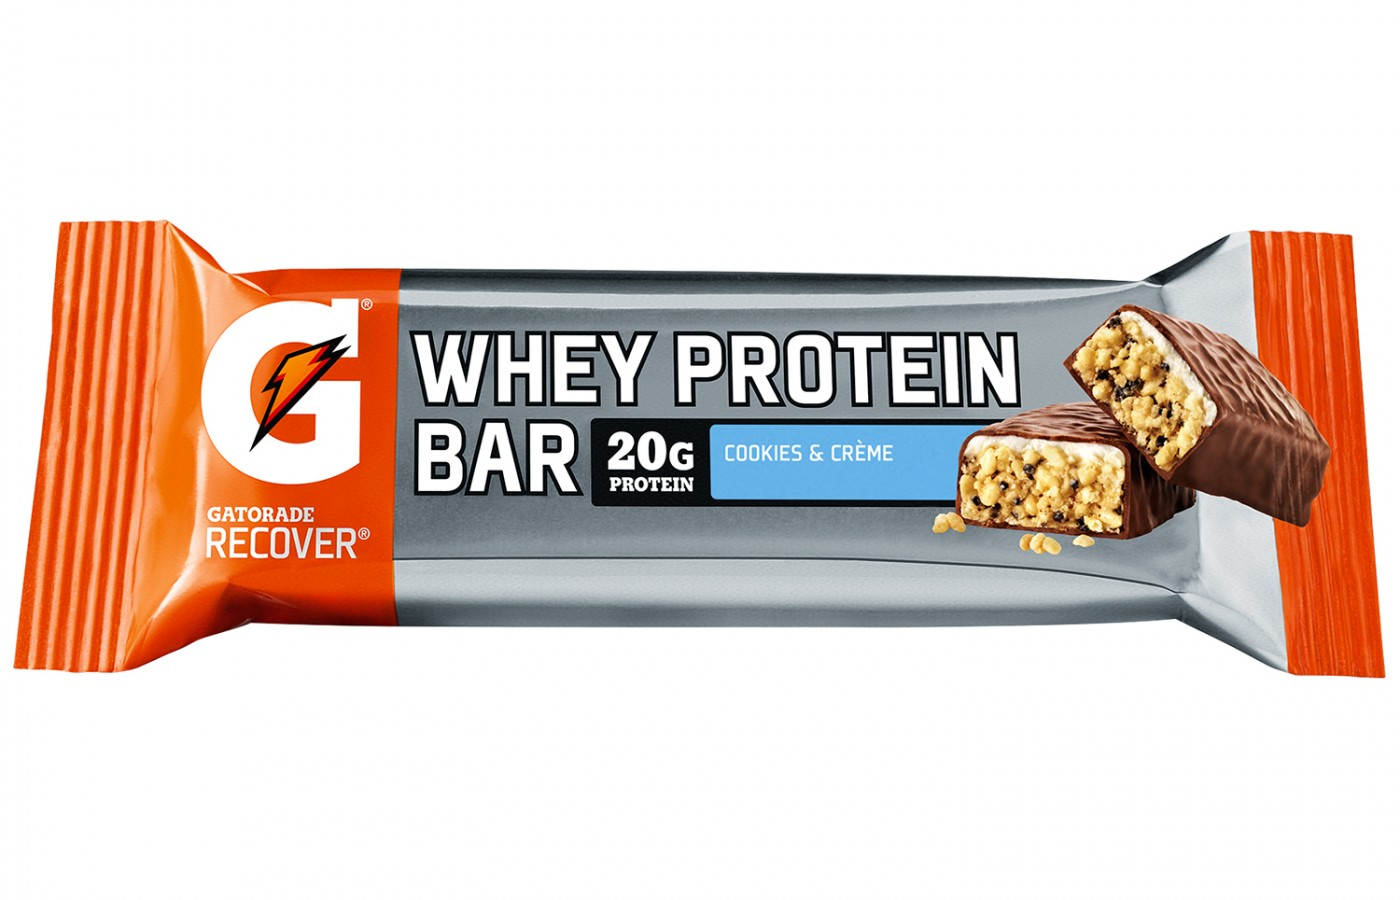 The Cookies and Creme flavor of Gatorade's Whey Protein Bar.